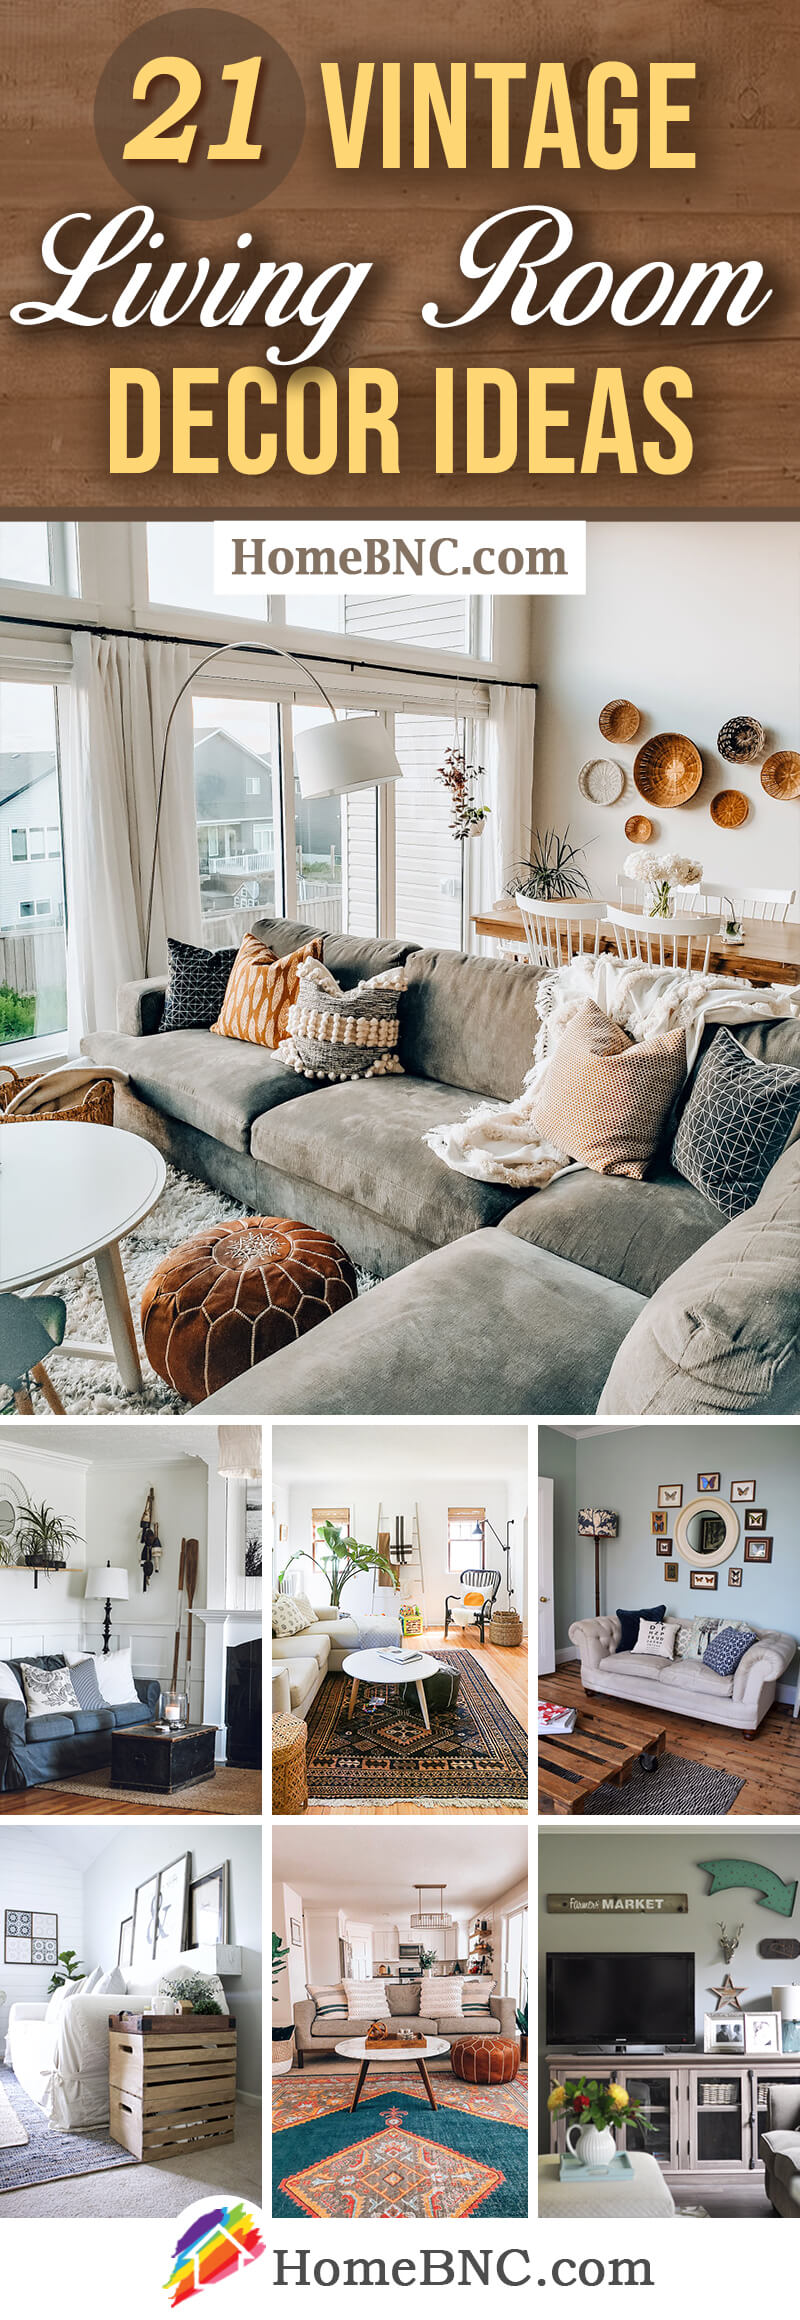 21 Best Vintage Living Room Decor And Design Ideas For 2021